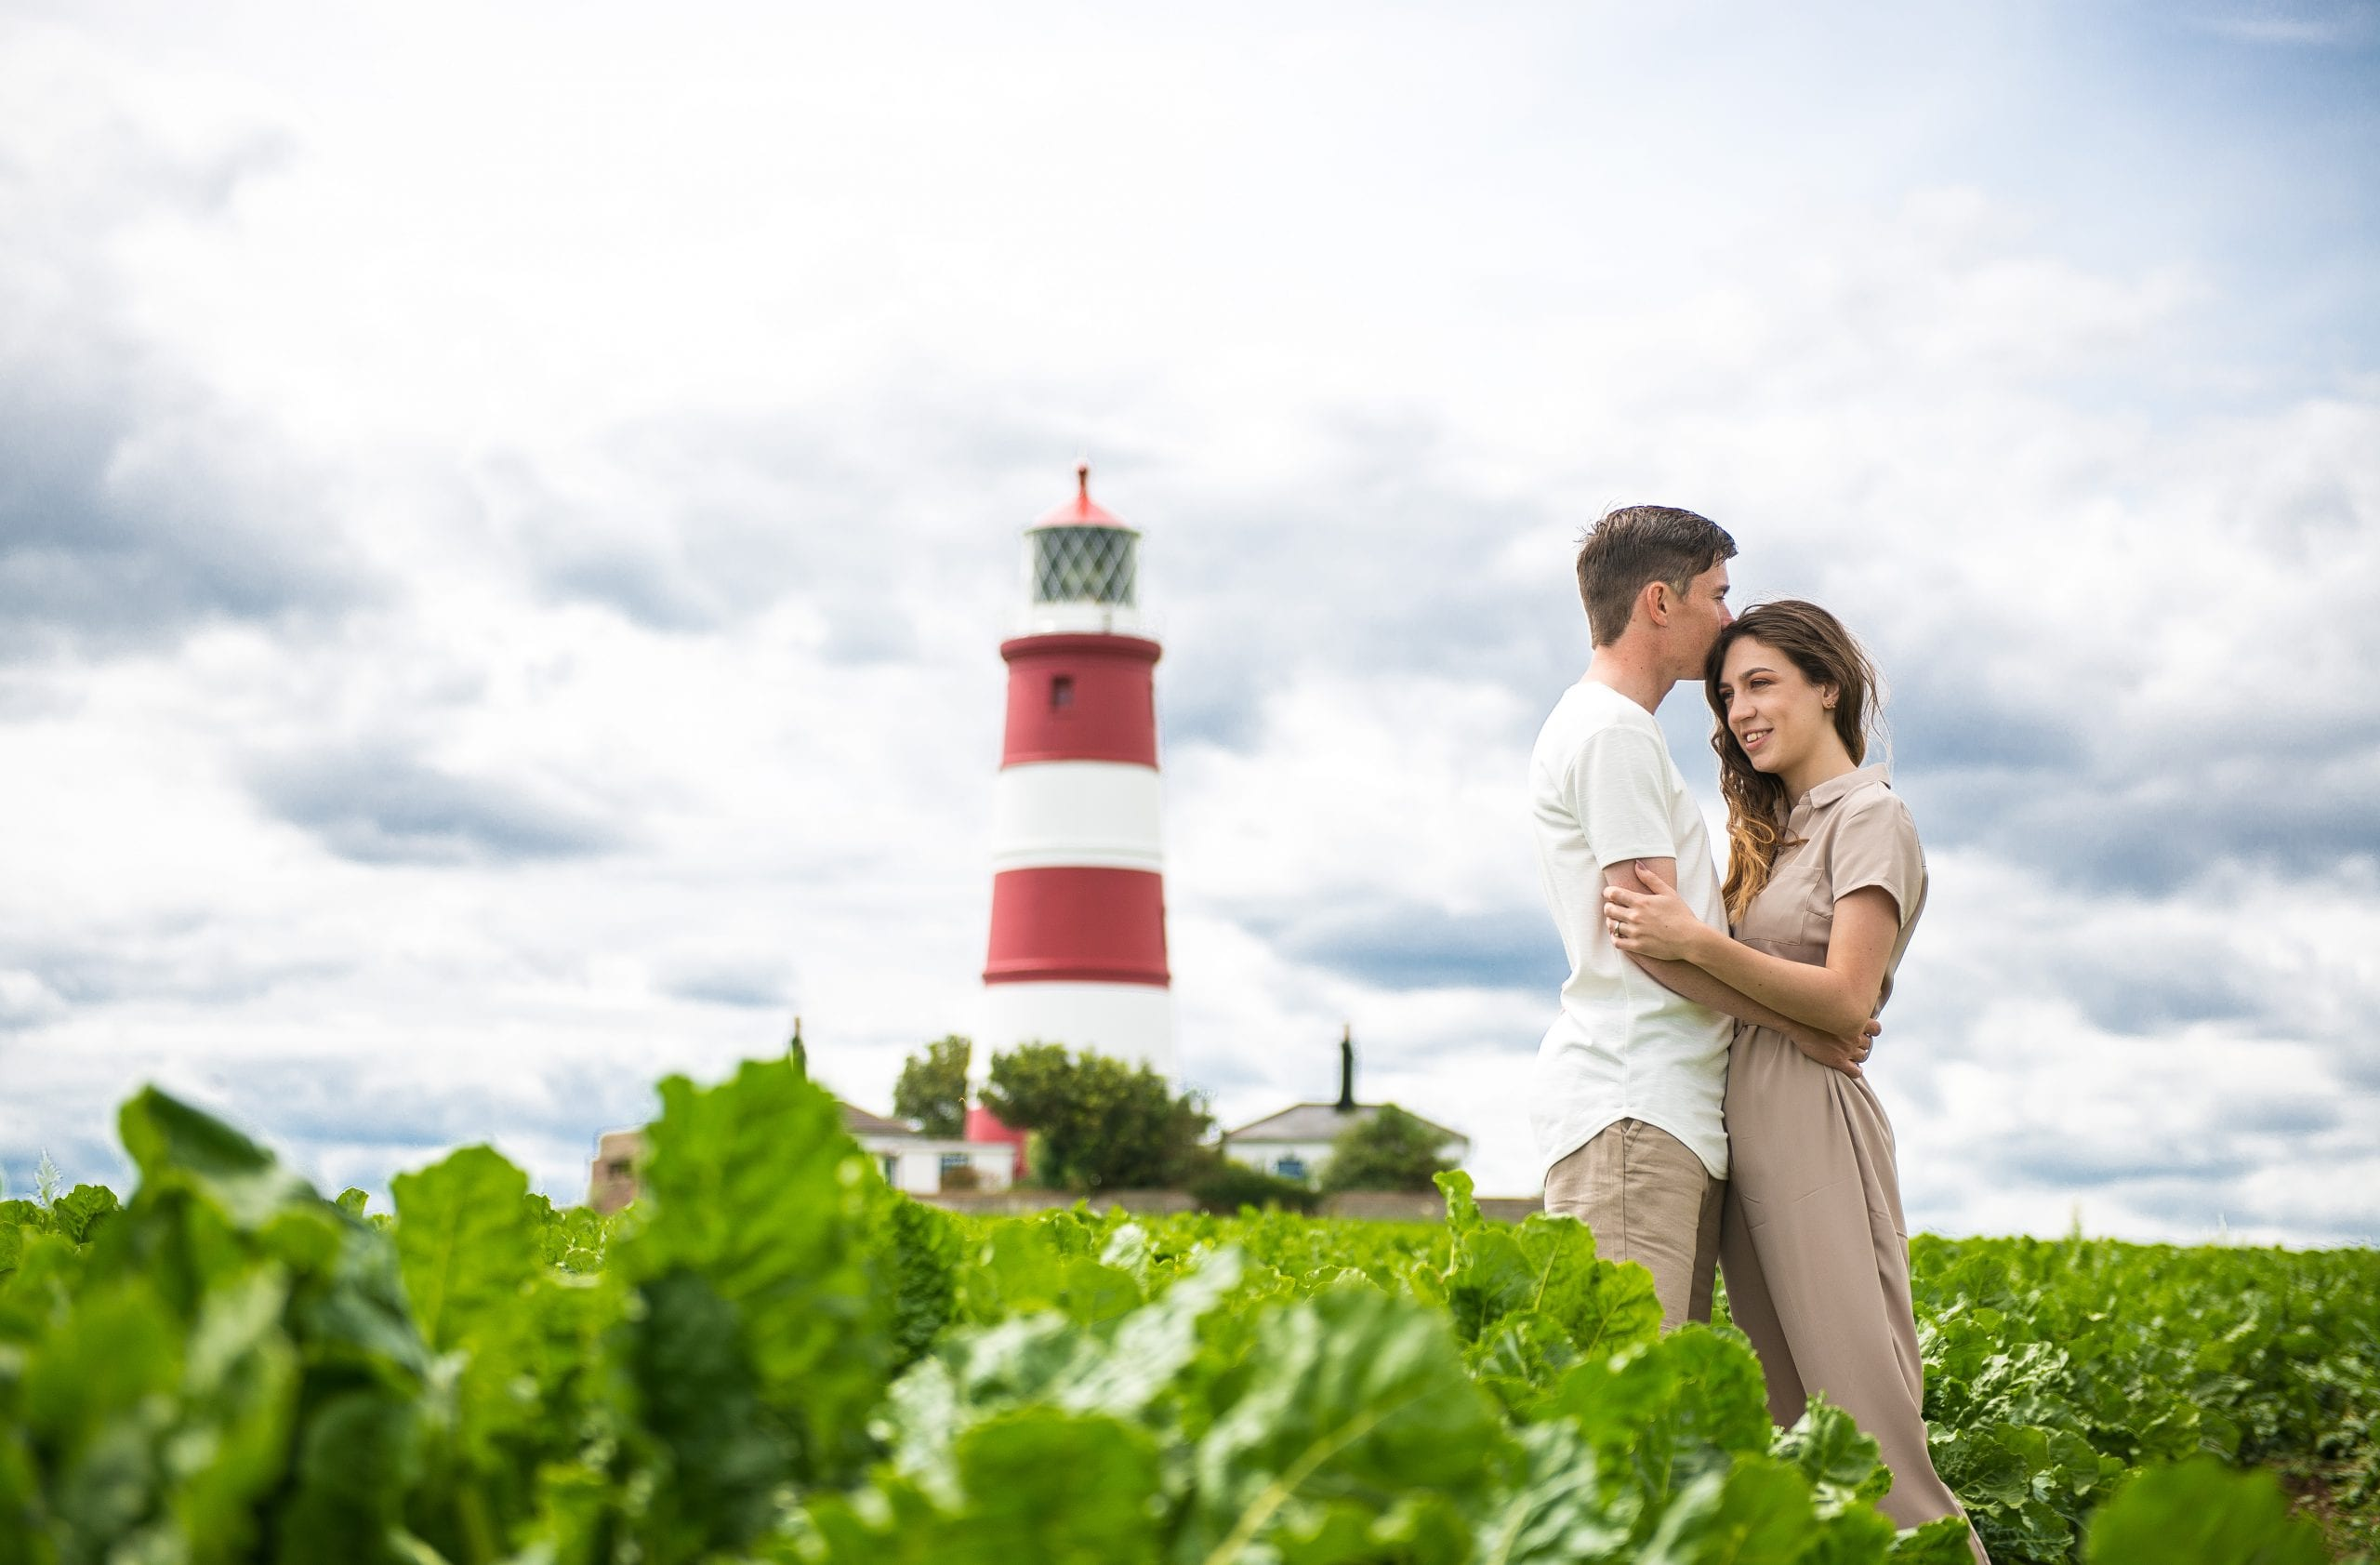 Engagement photoshoot at Happisburgh beach and lighthouse in norfolk